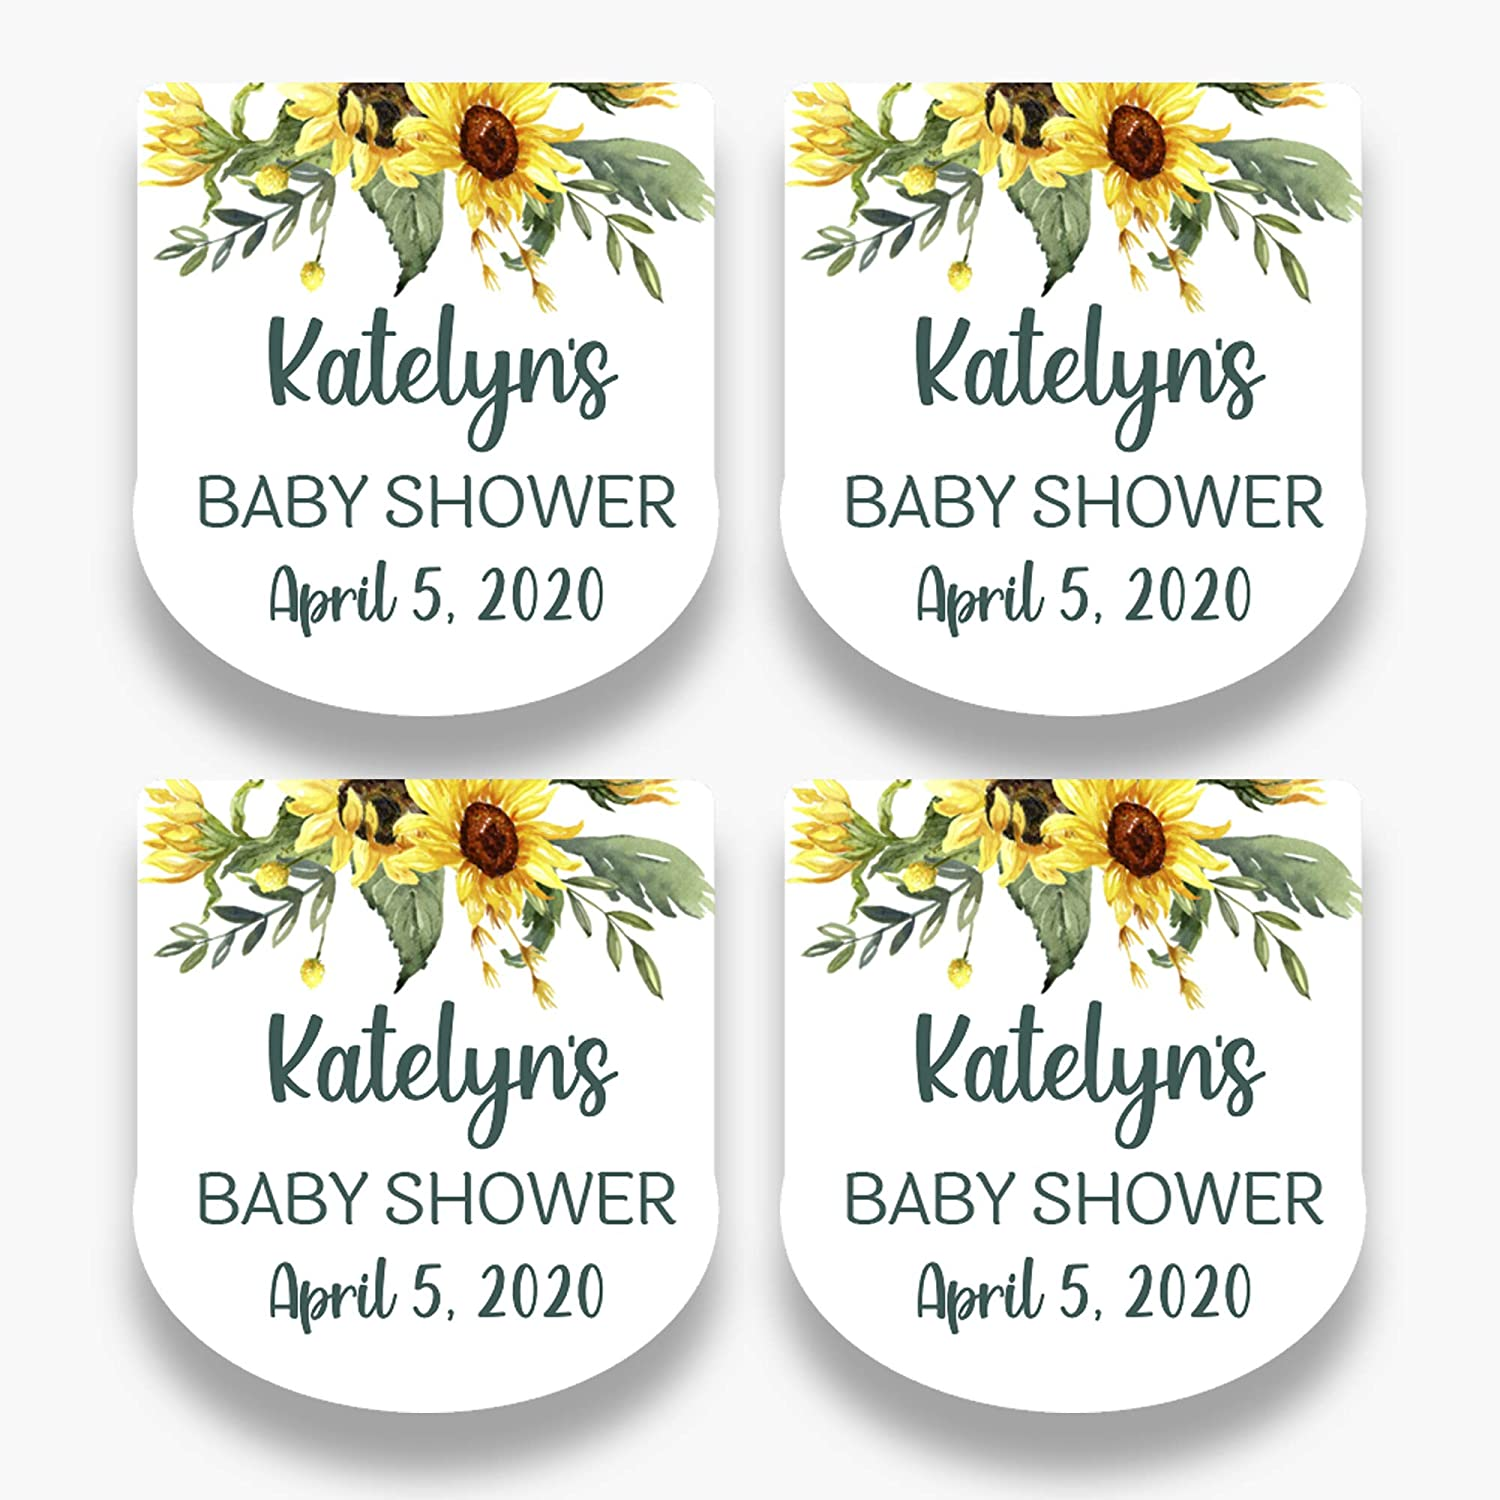 Custom Printed Labels for Small Favor Bottles  2 Label sizes for Bath and Body Works Pocket Bac  Falling Eucalyptus  FE20